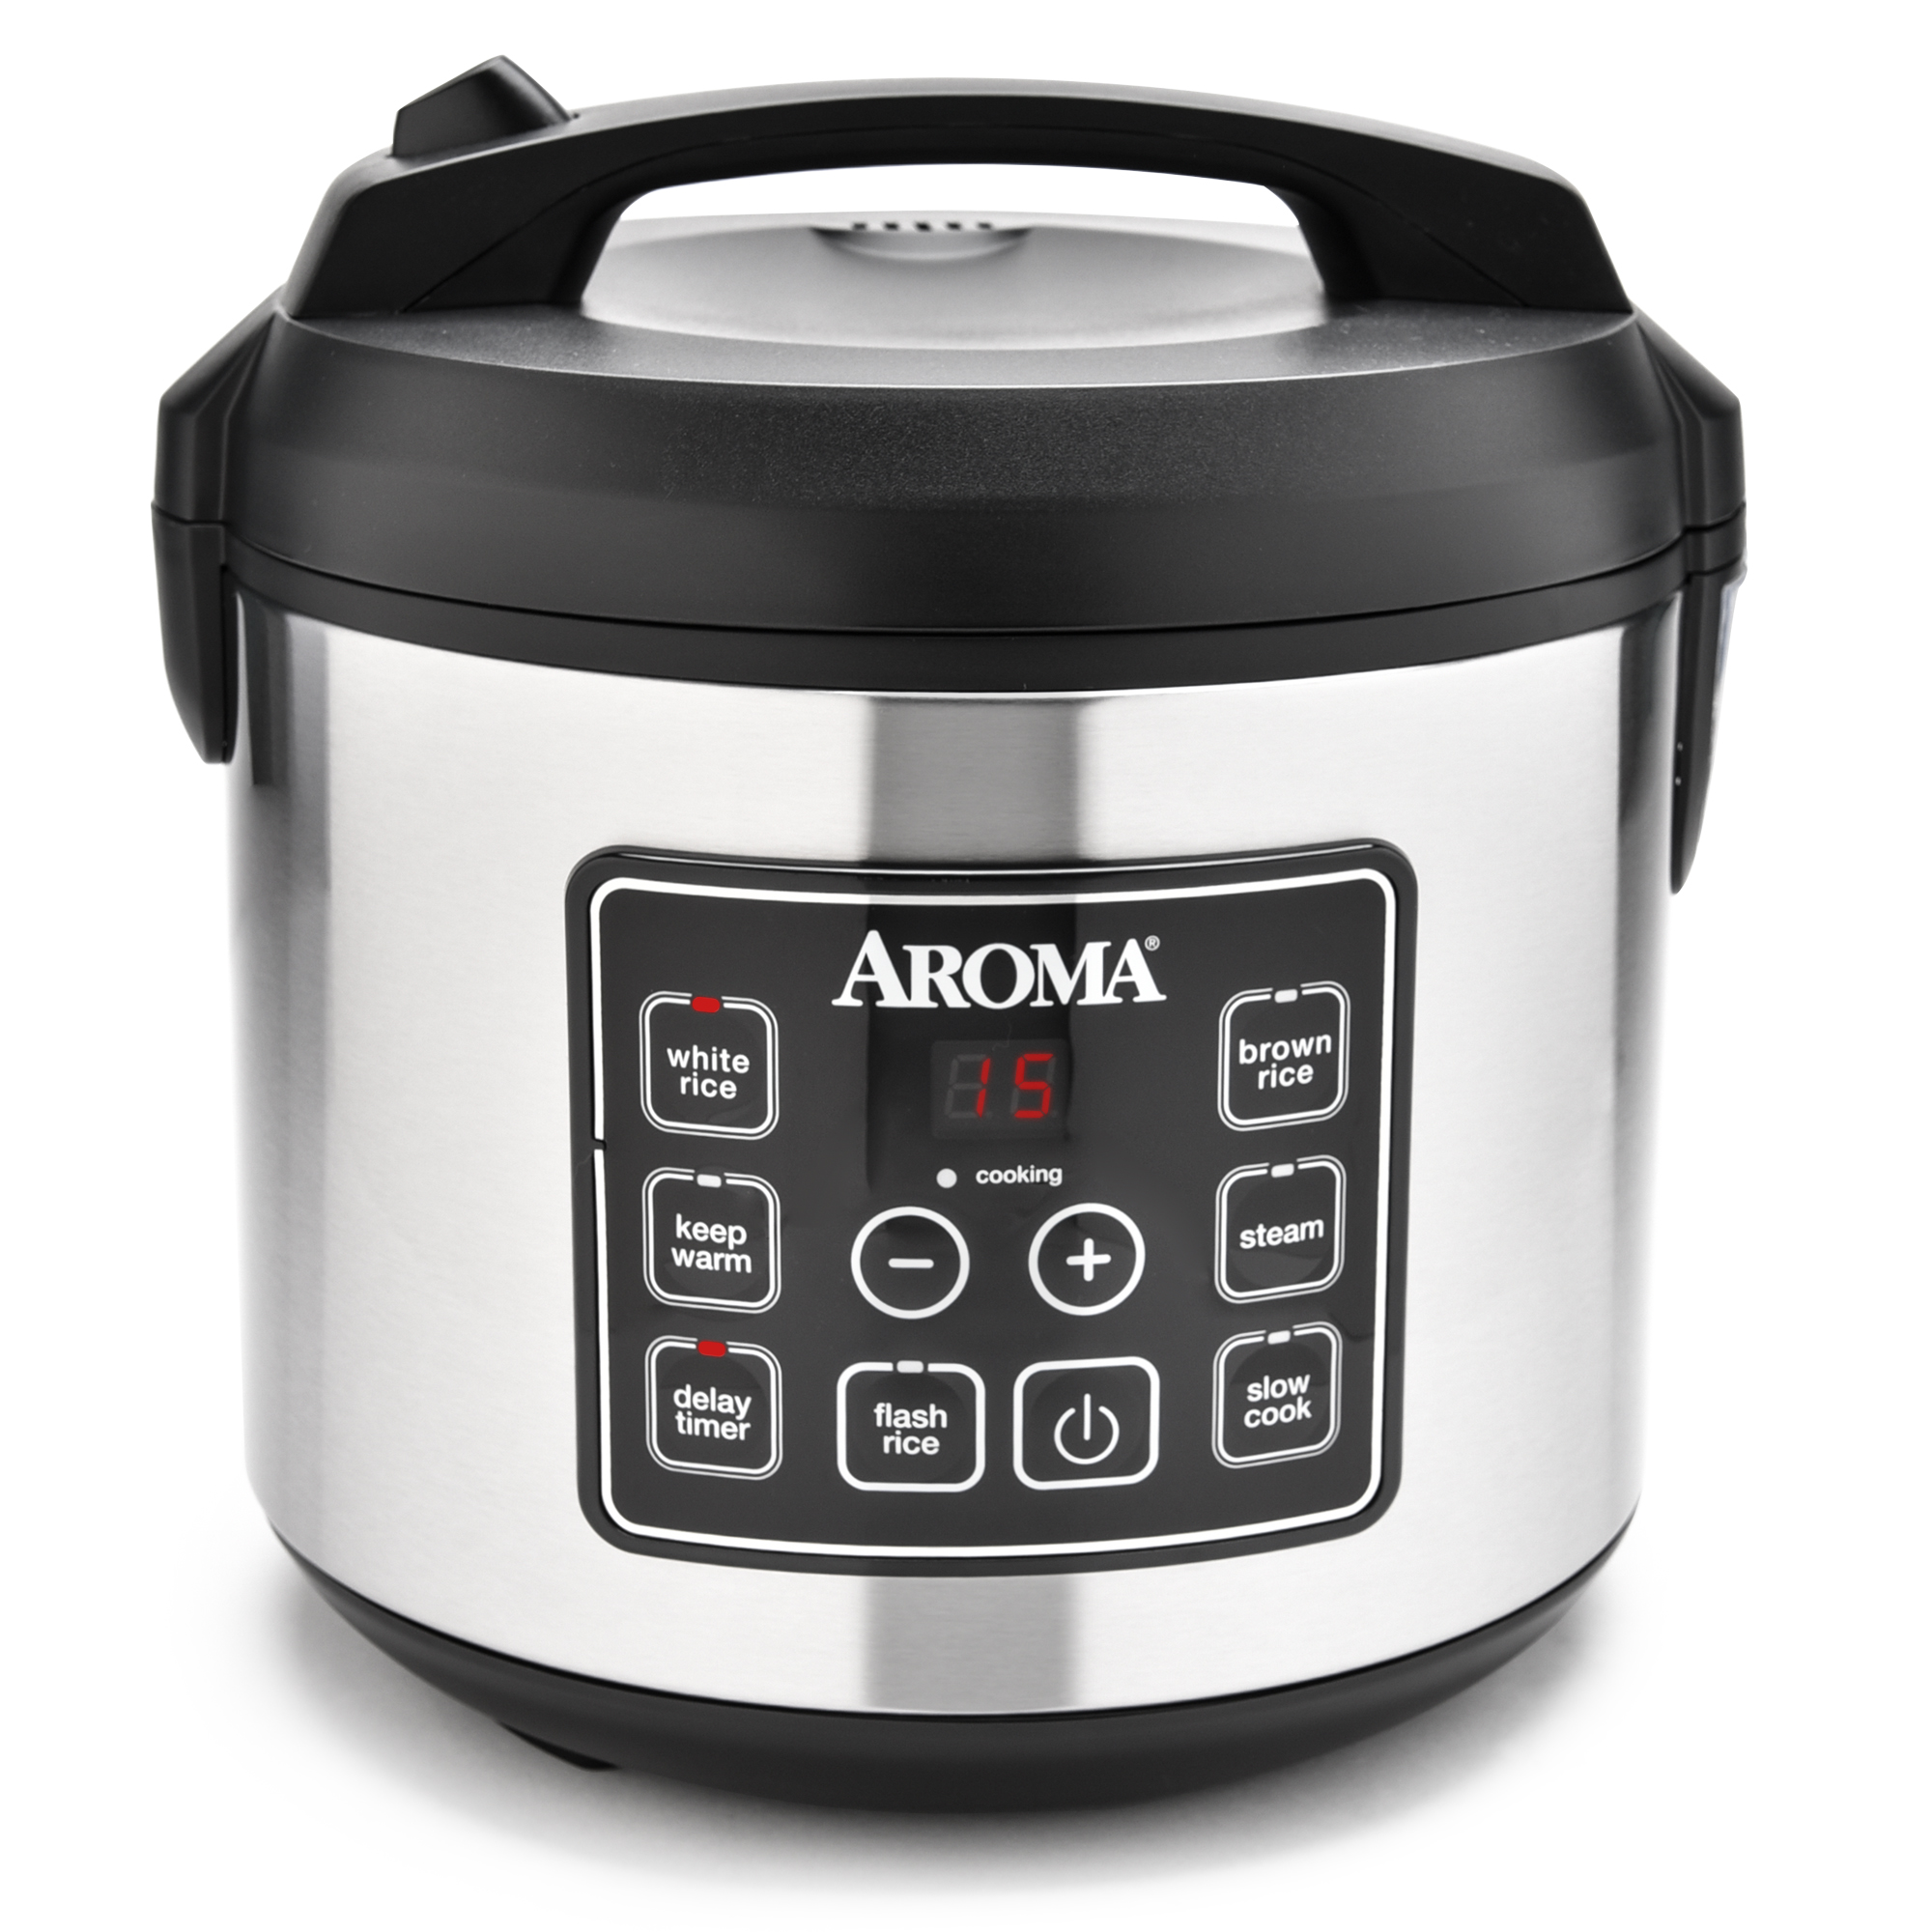 aroma 20 cup programmable rice cooker slow cooker and food steamer stainless steel aroma 20 cup programmable rice cooker slow cooker and food      rh   walmart com